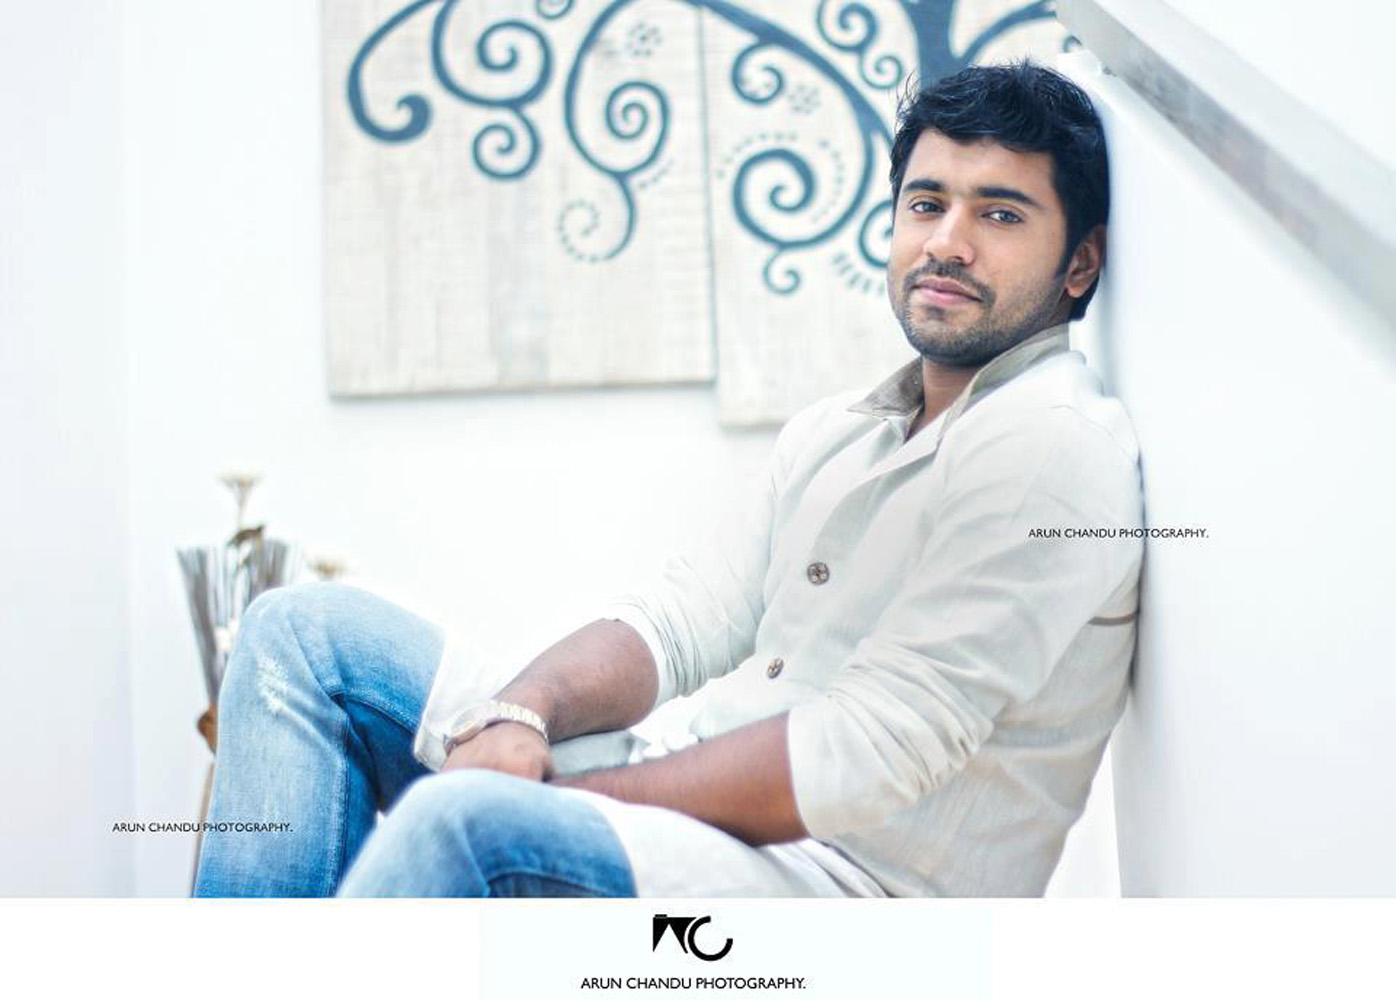 http://onlookersmedia.in/wp-content/uploads/2015/04/Nivin-Pauly-Stills-Images-Photos-Malayalam-Movie-2015-Onlookers-Media-34.jpg